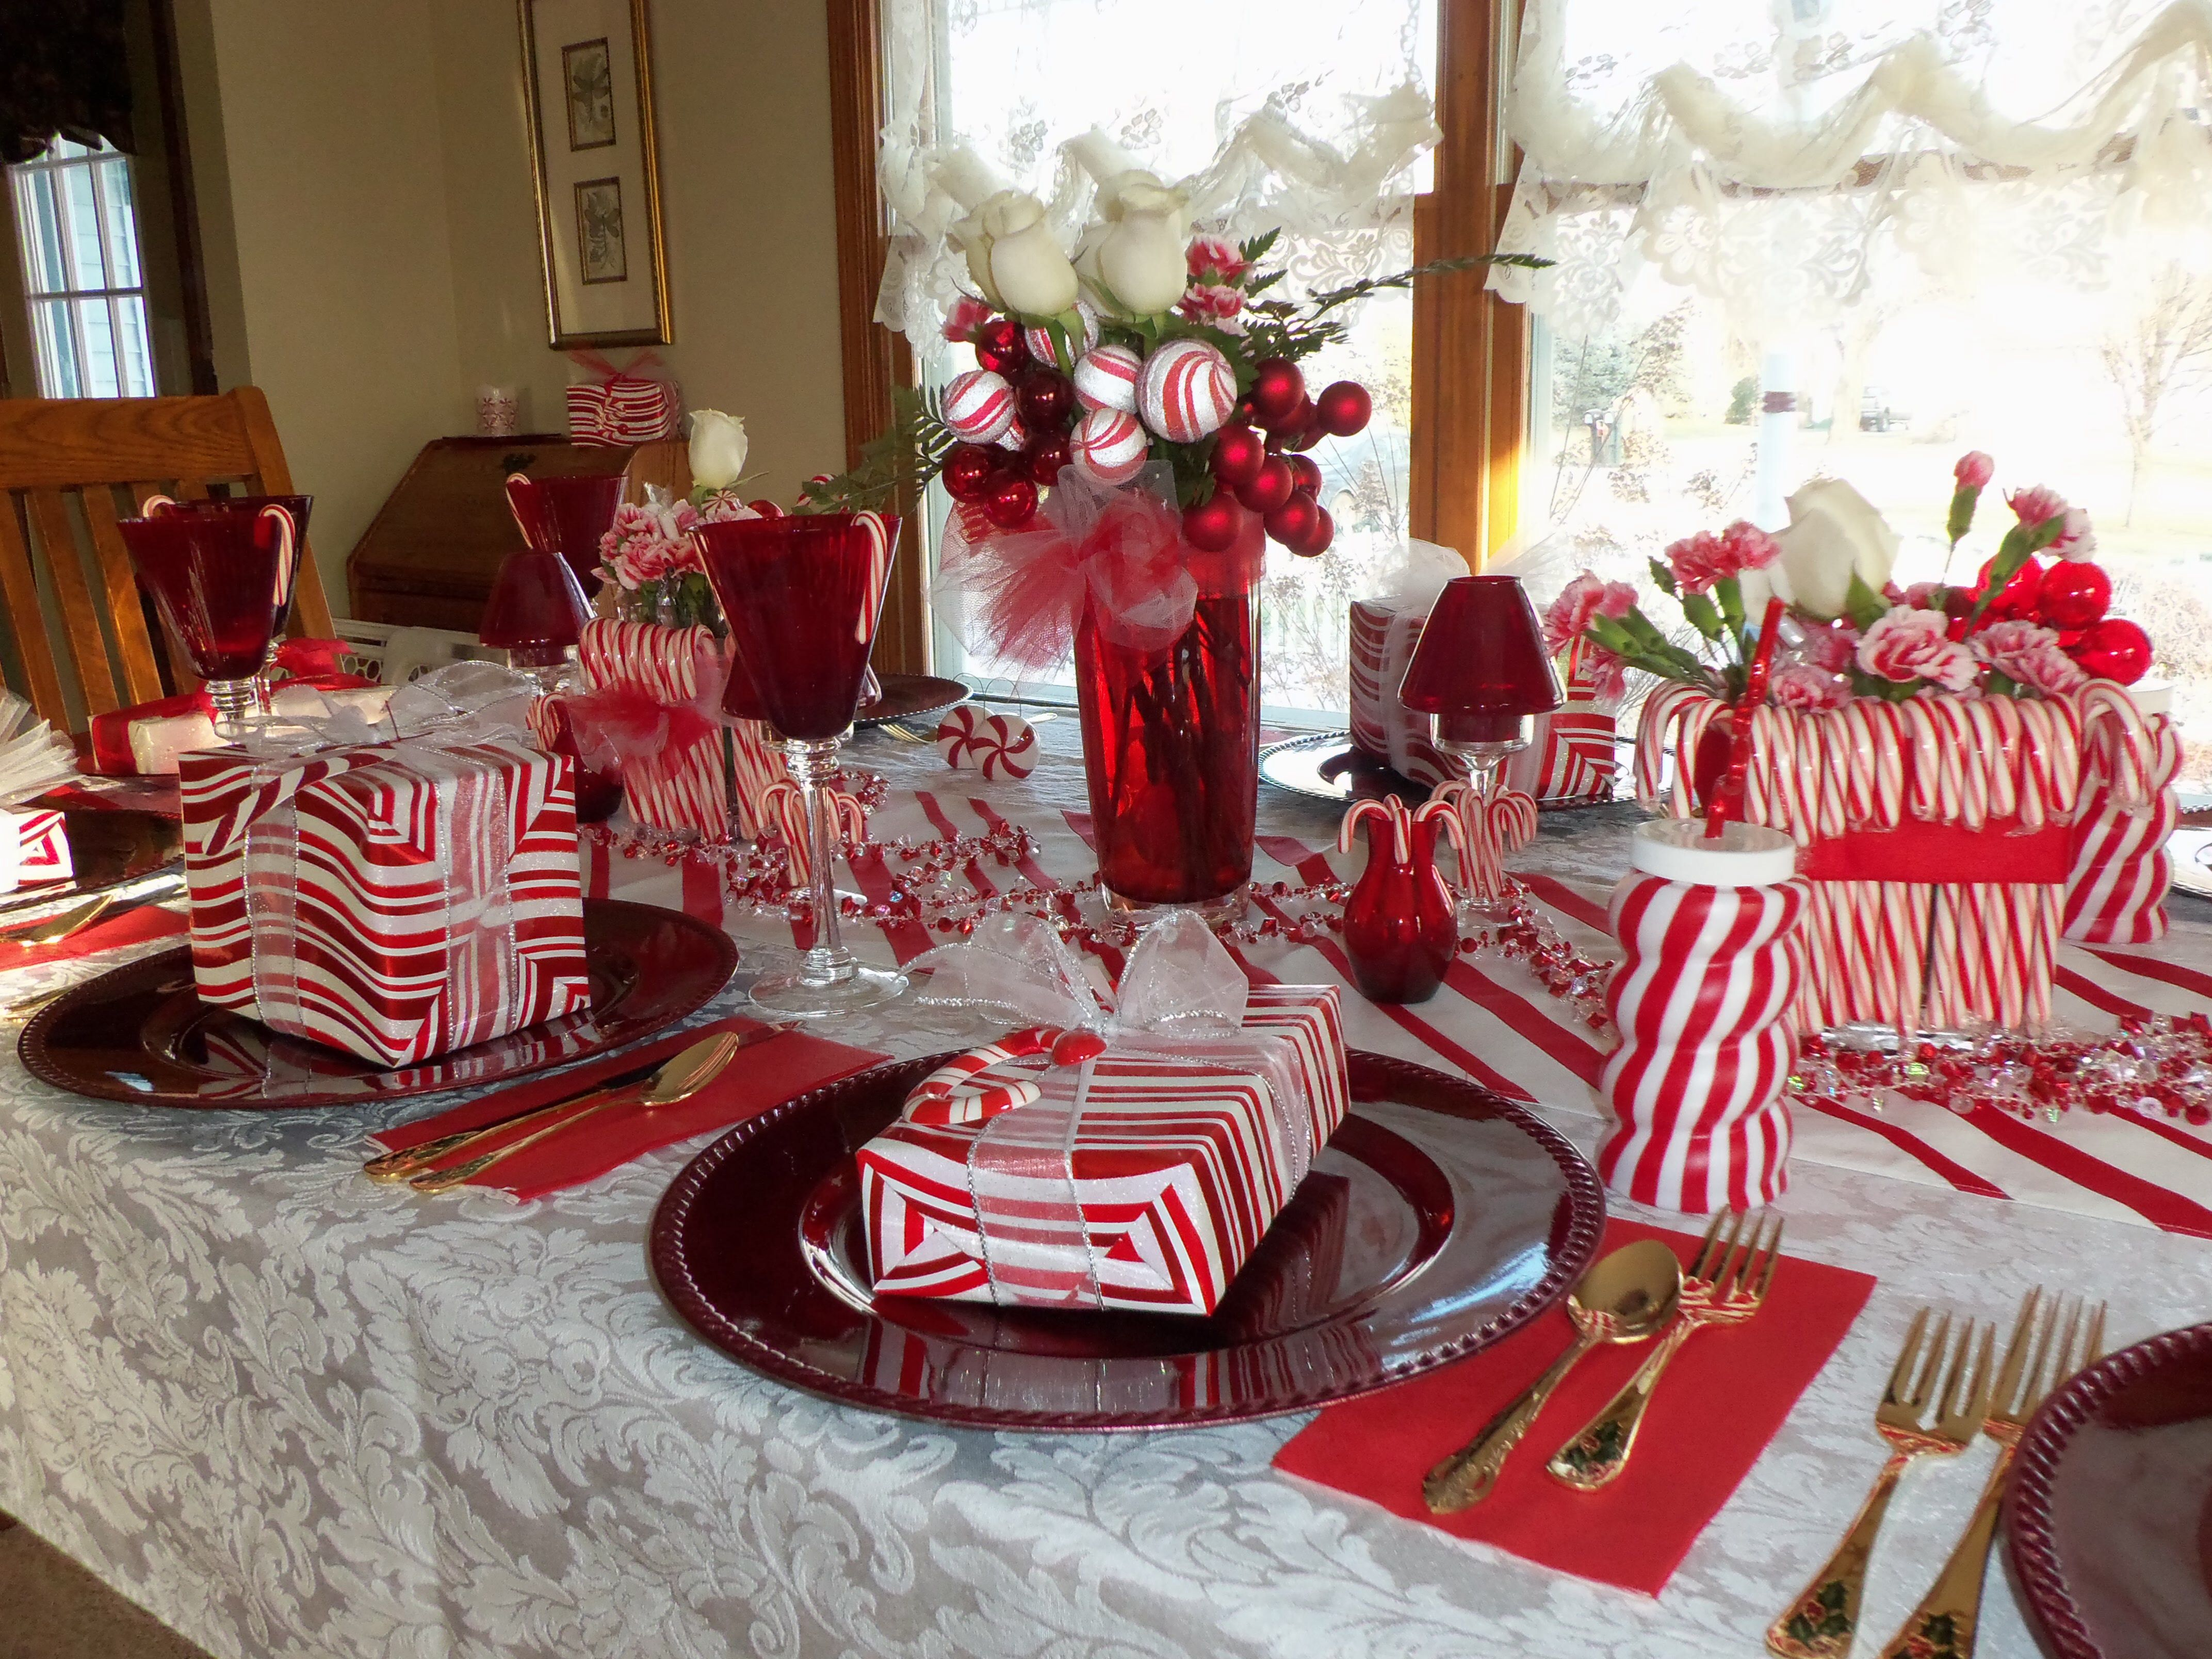 Candy cane Christmas table Candy cane Christmas